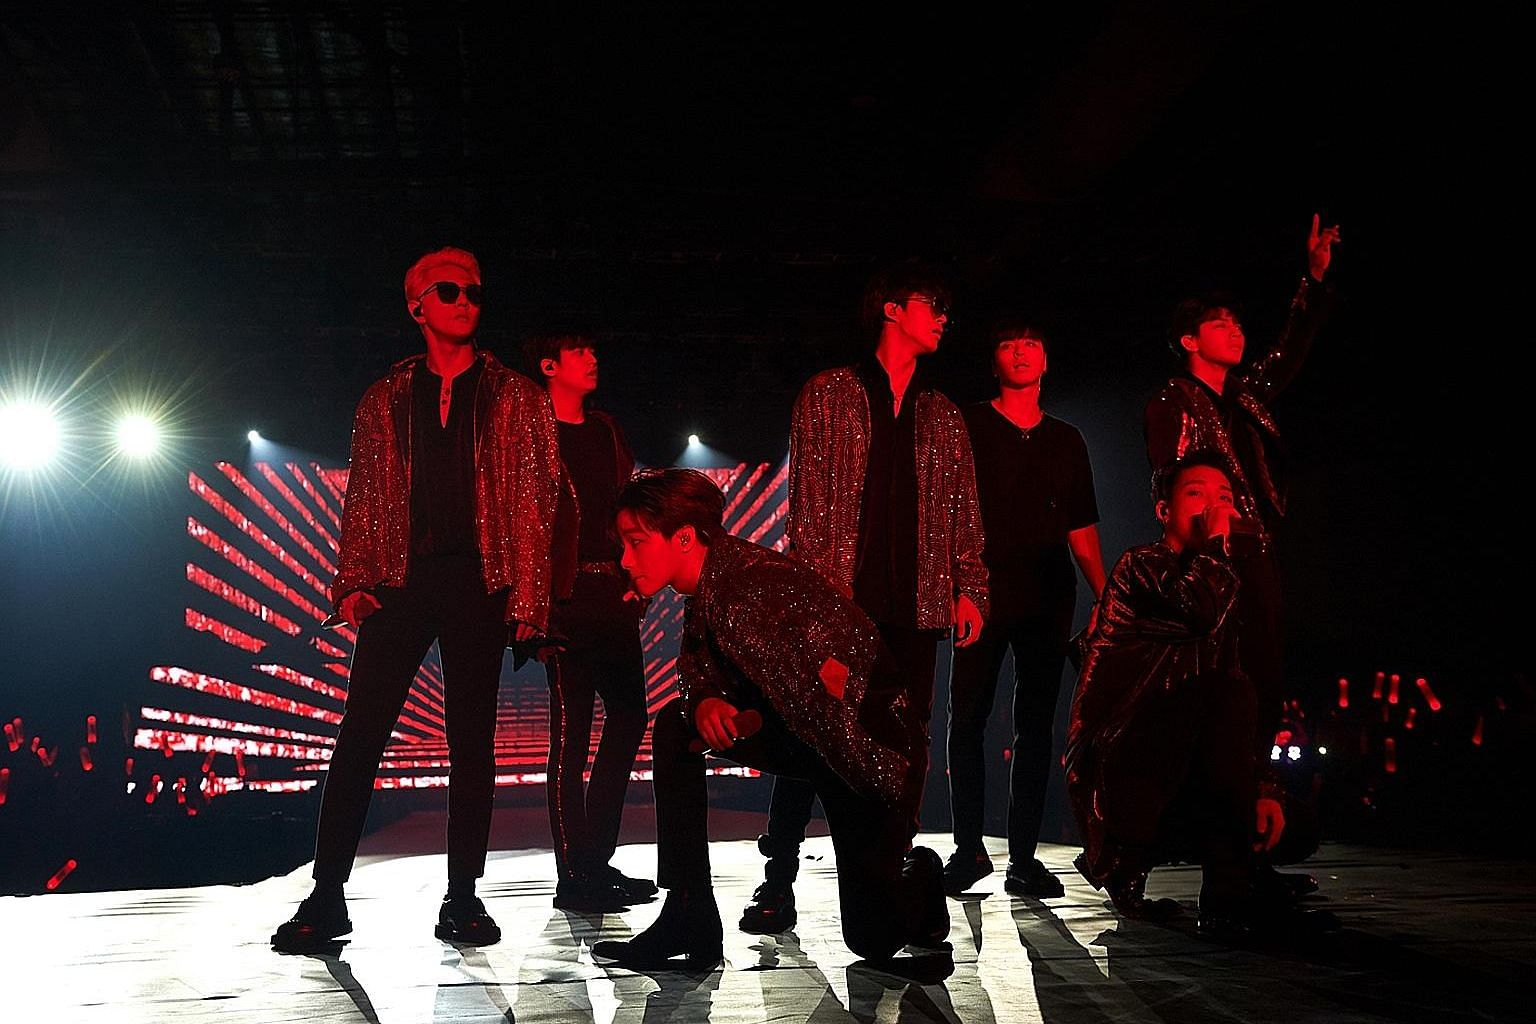 K-pop boyband iKon, comprising (from left) Donghyuk, Chanwoo, Jinhwan, B.I, Junhoe, Bobby and Yunhyeong, worked the crowd well at their concert.